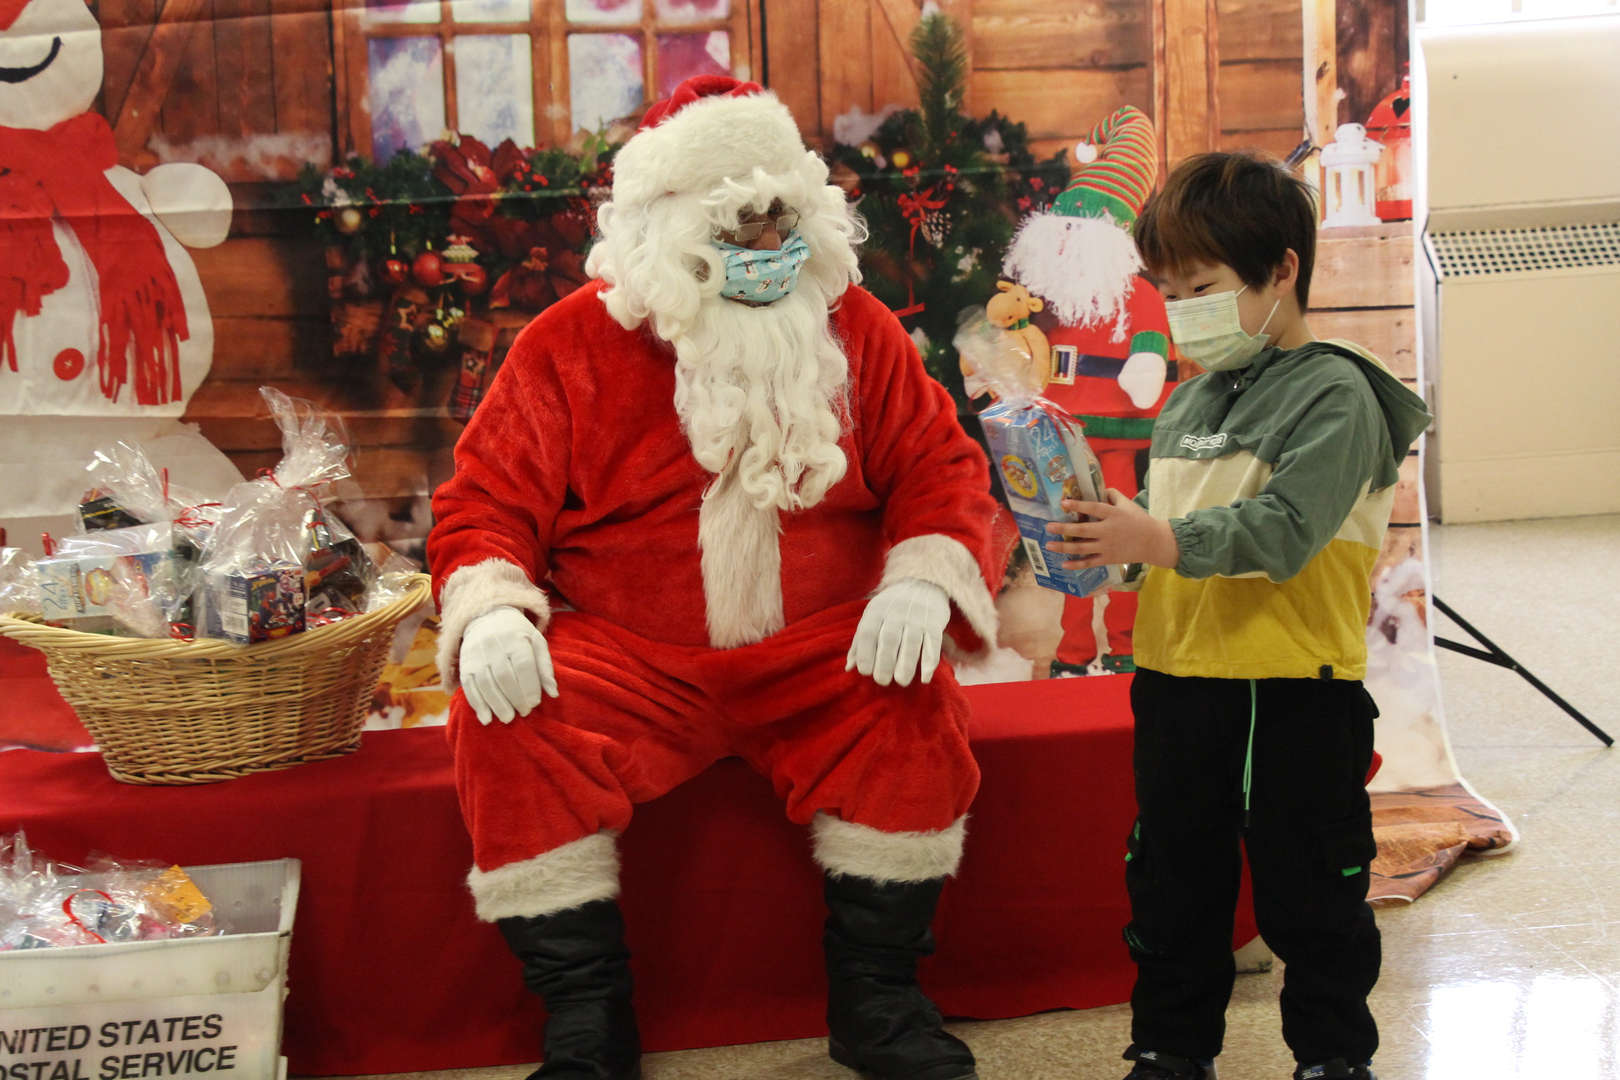 Santa makes a young boy very happy with his present.